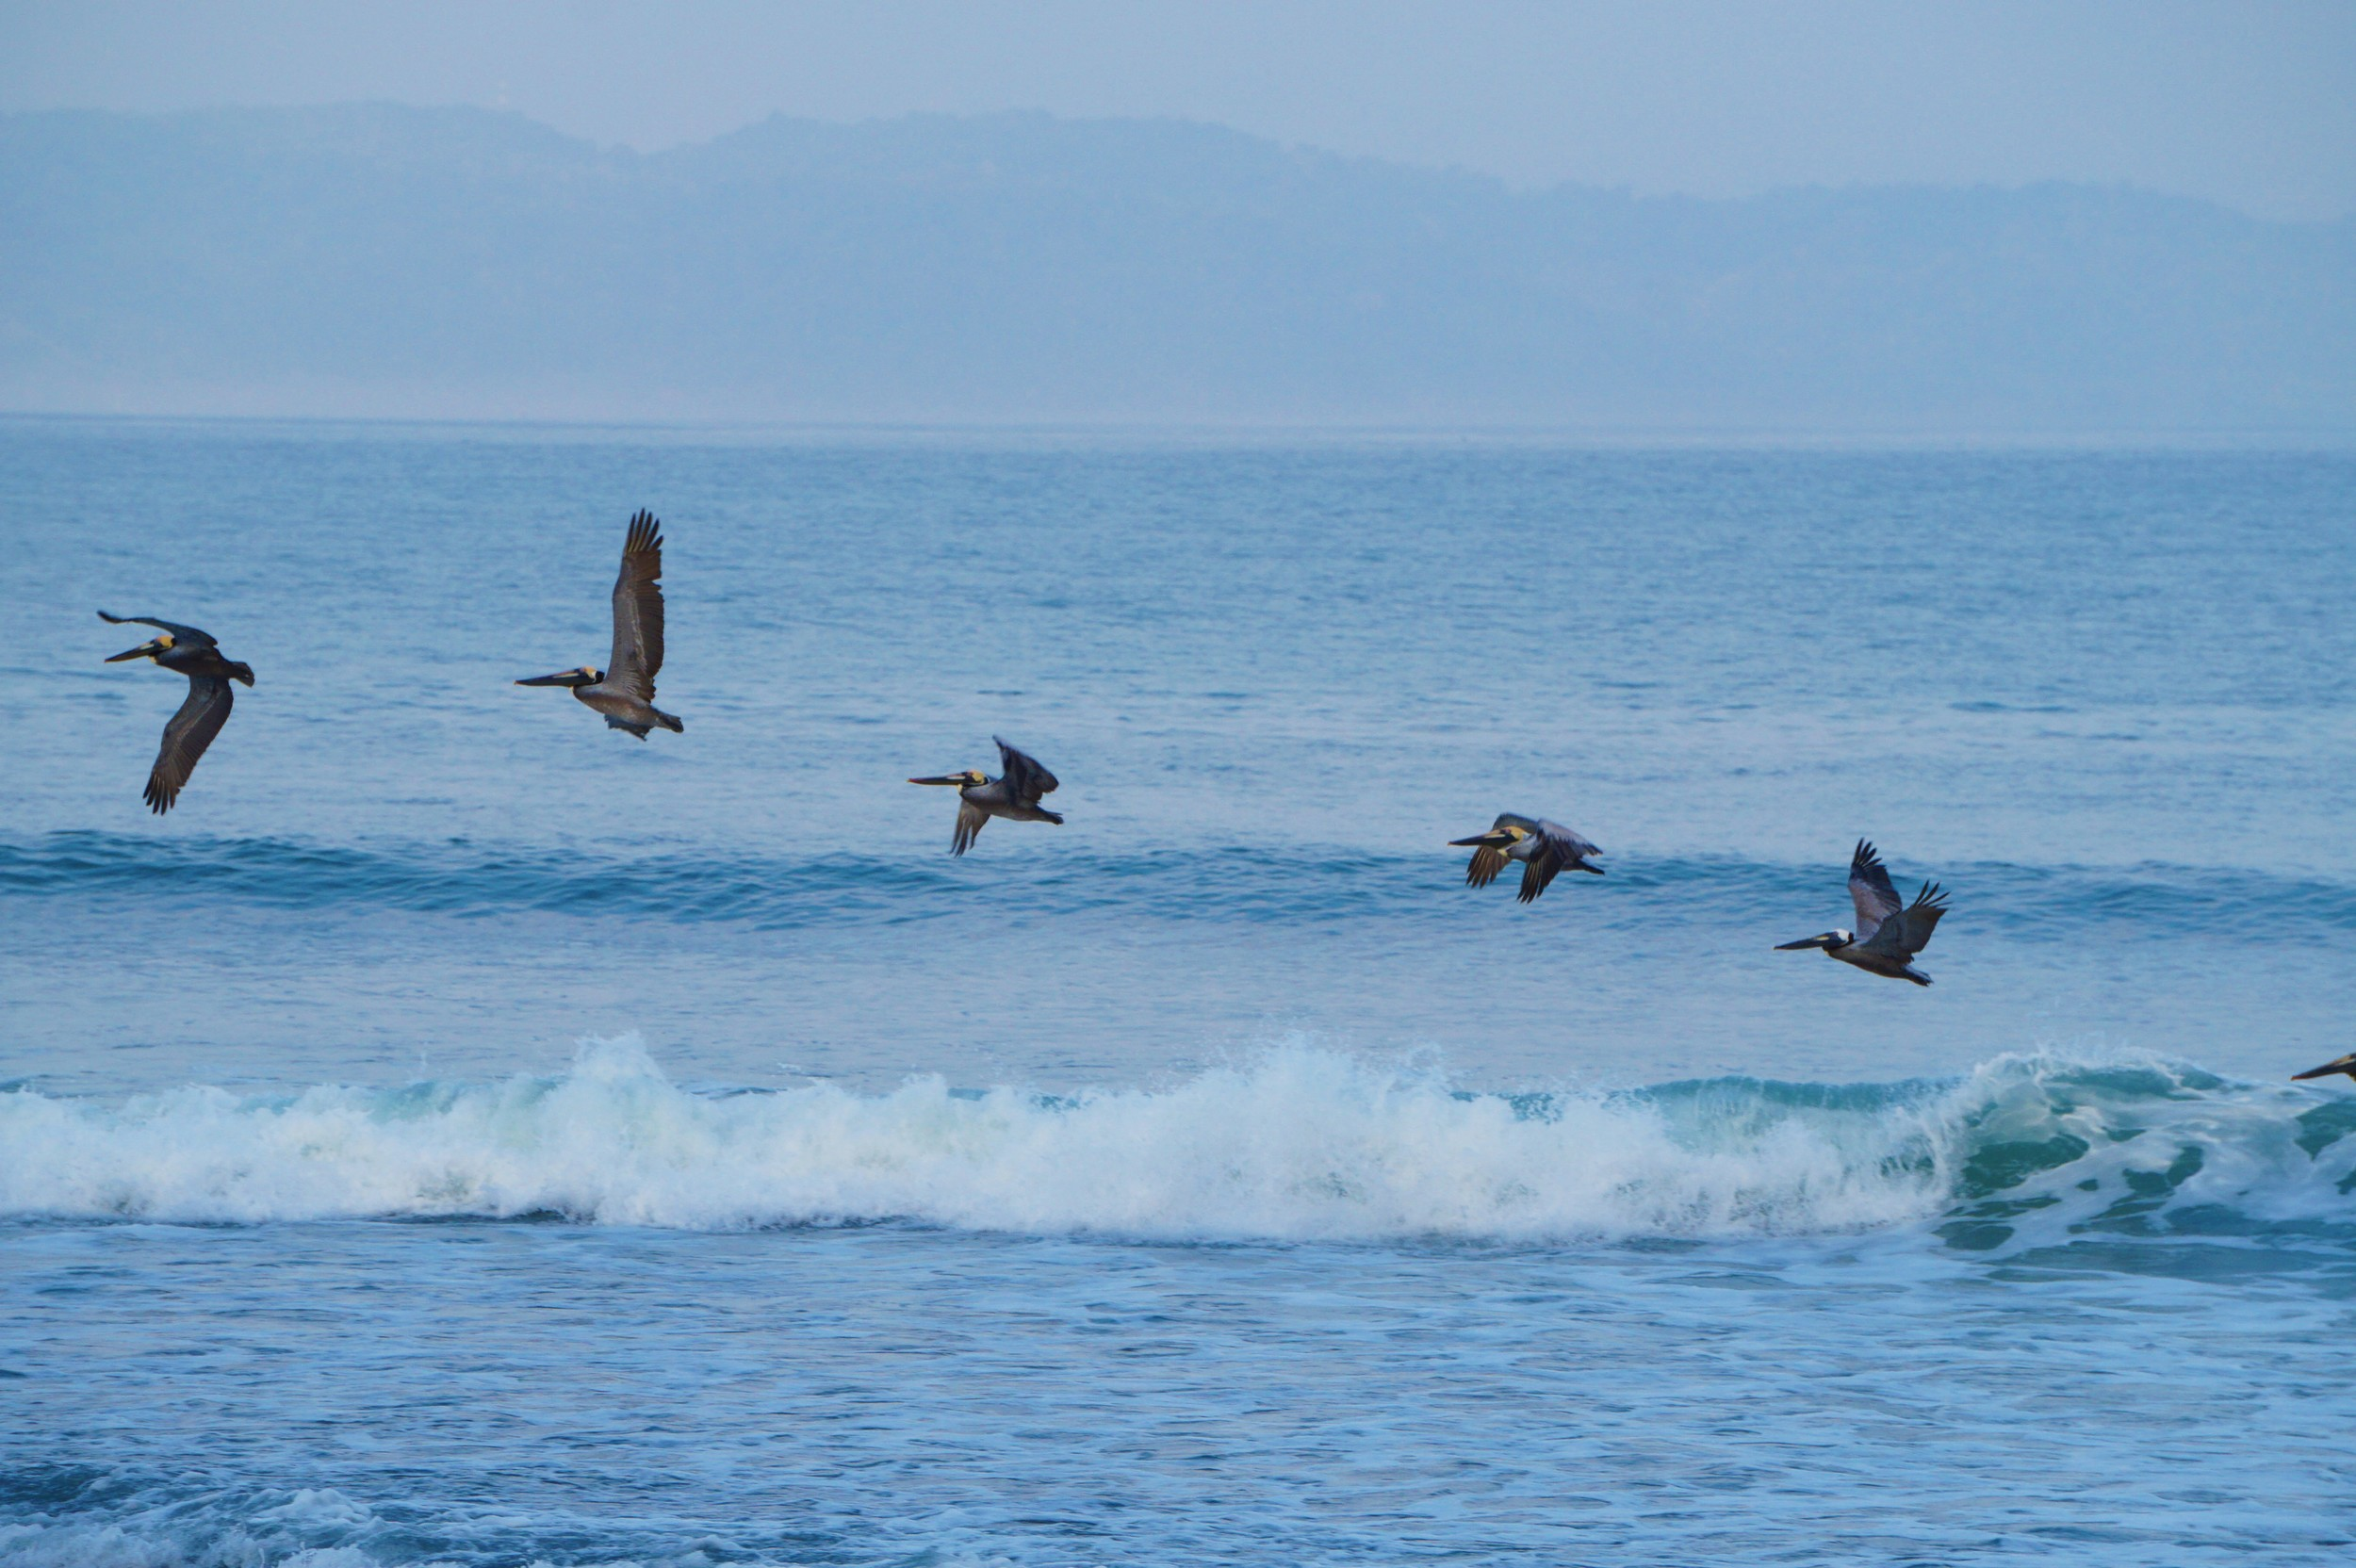 Pacific Brown Pelicans are as hungry for surf as any star gazer, seen here doing a 'mainy' on a flat day